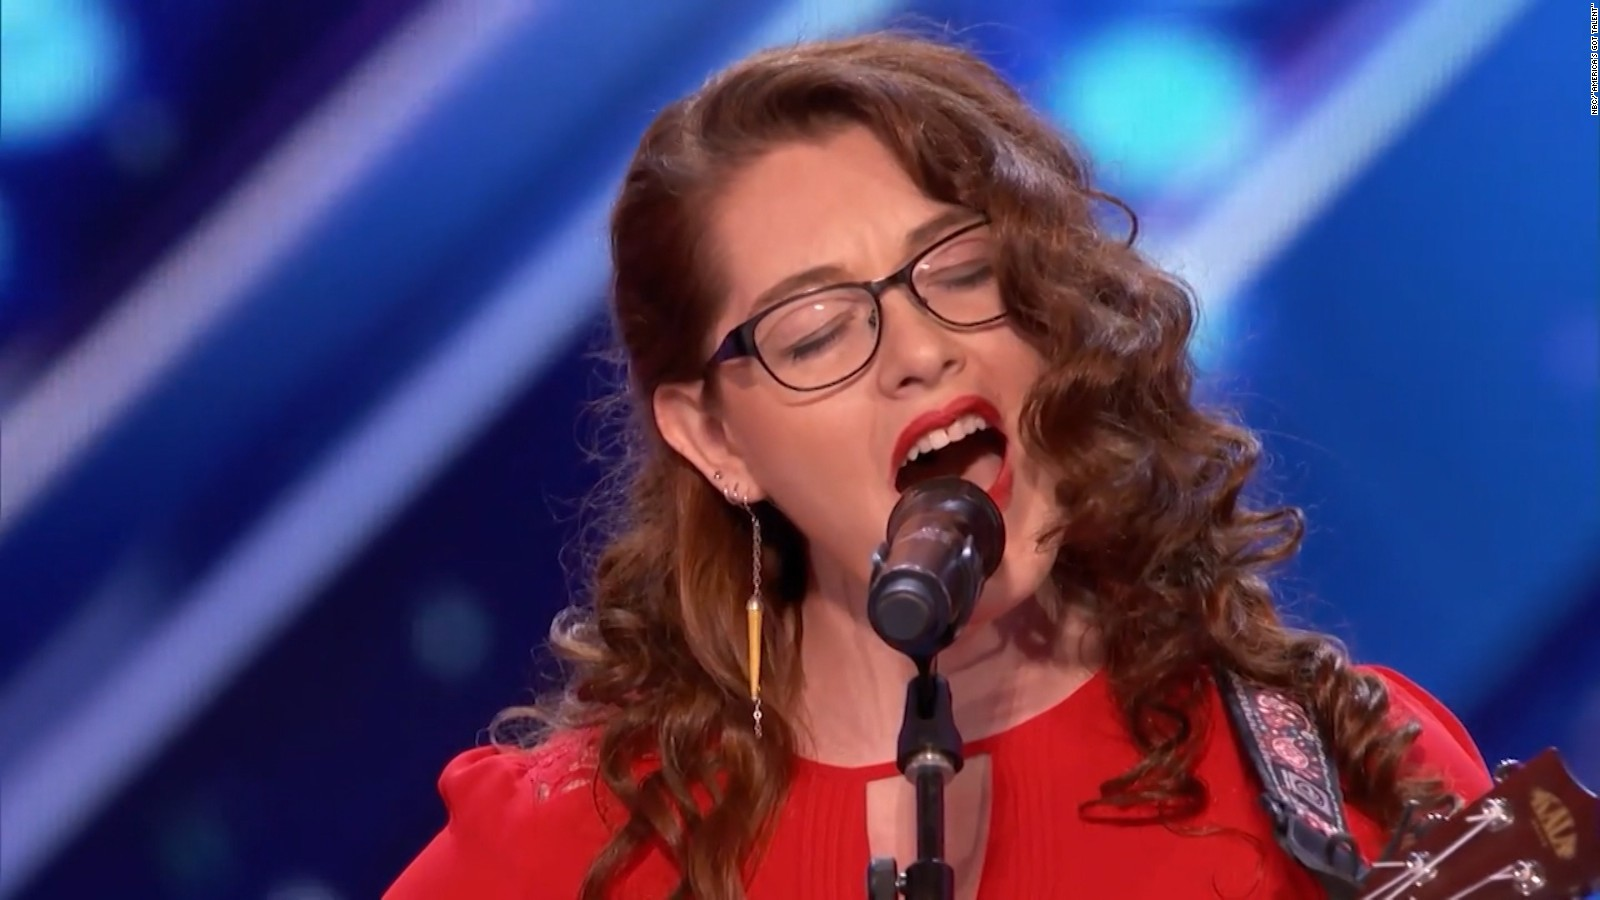 Mandy Harvey sings and plays the ukelele on America's Got Talent.